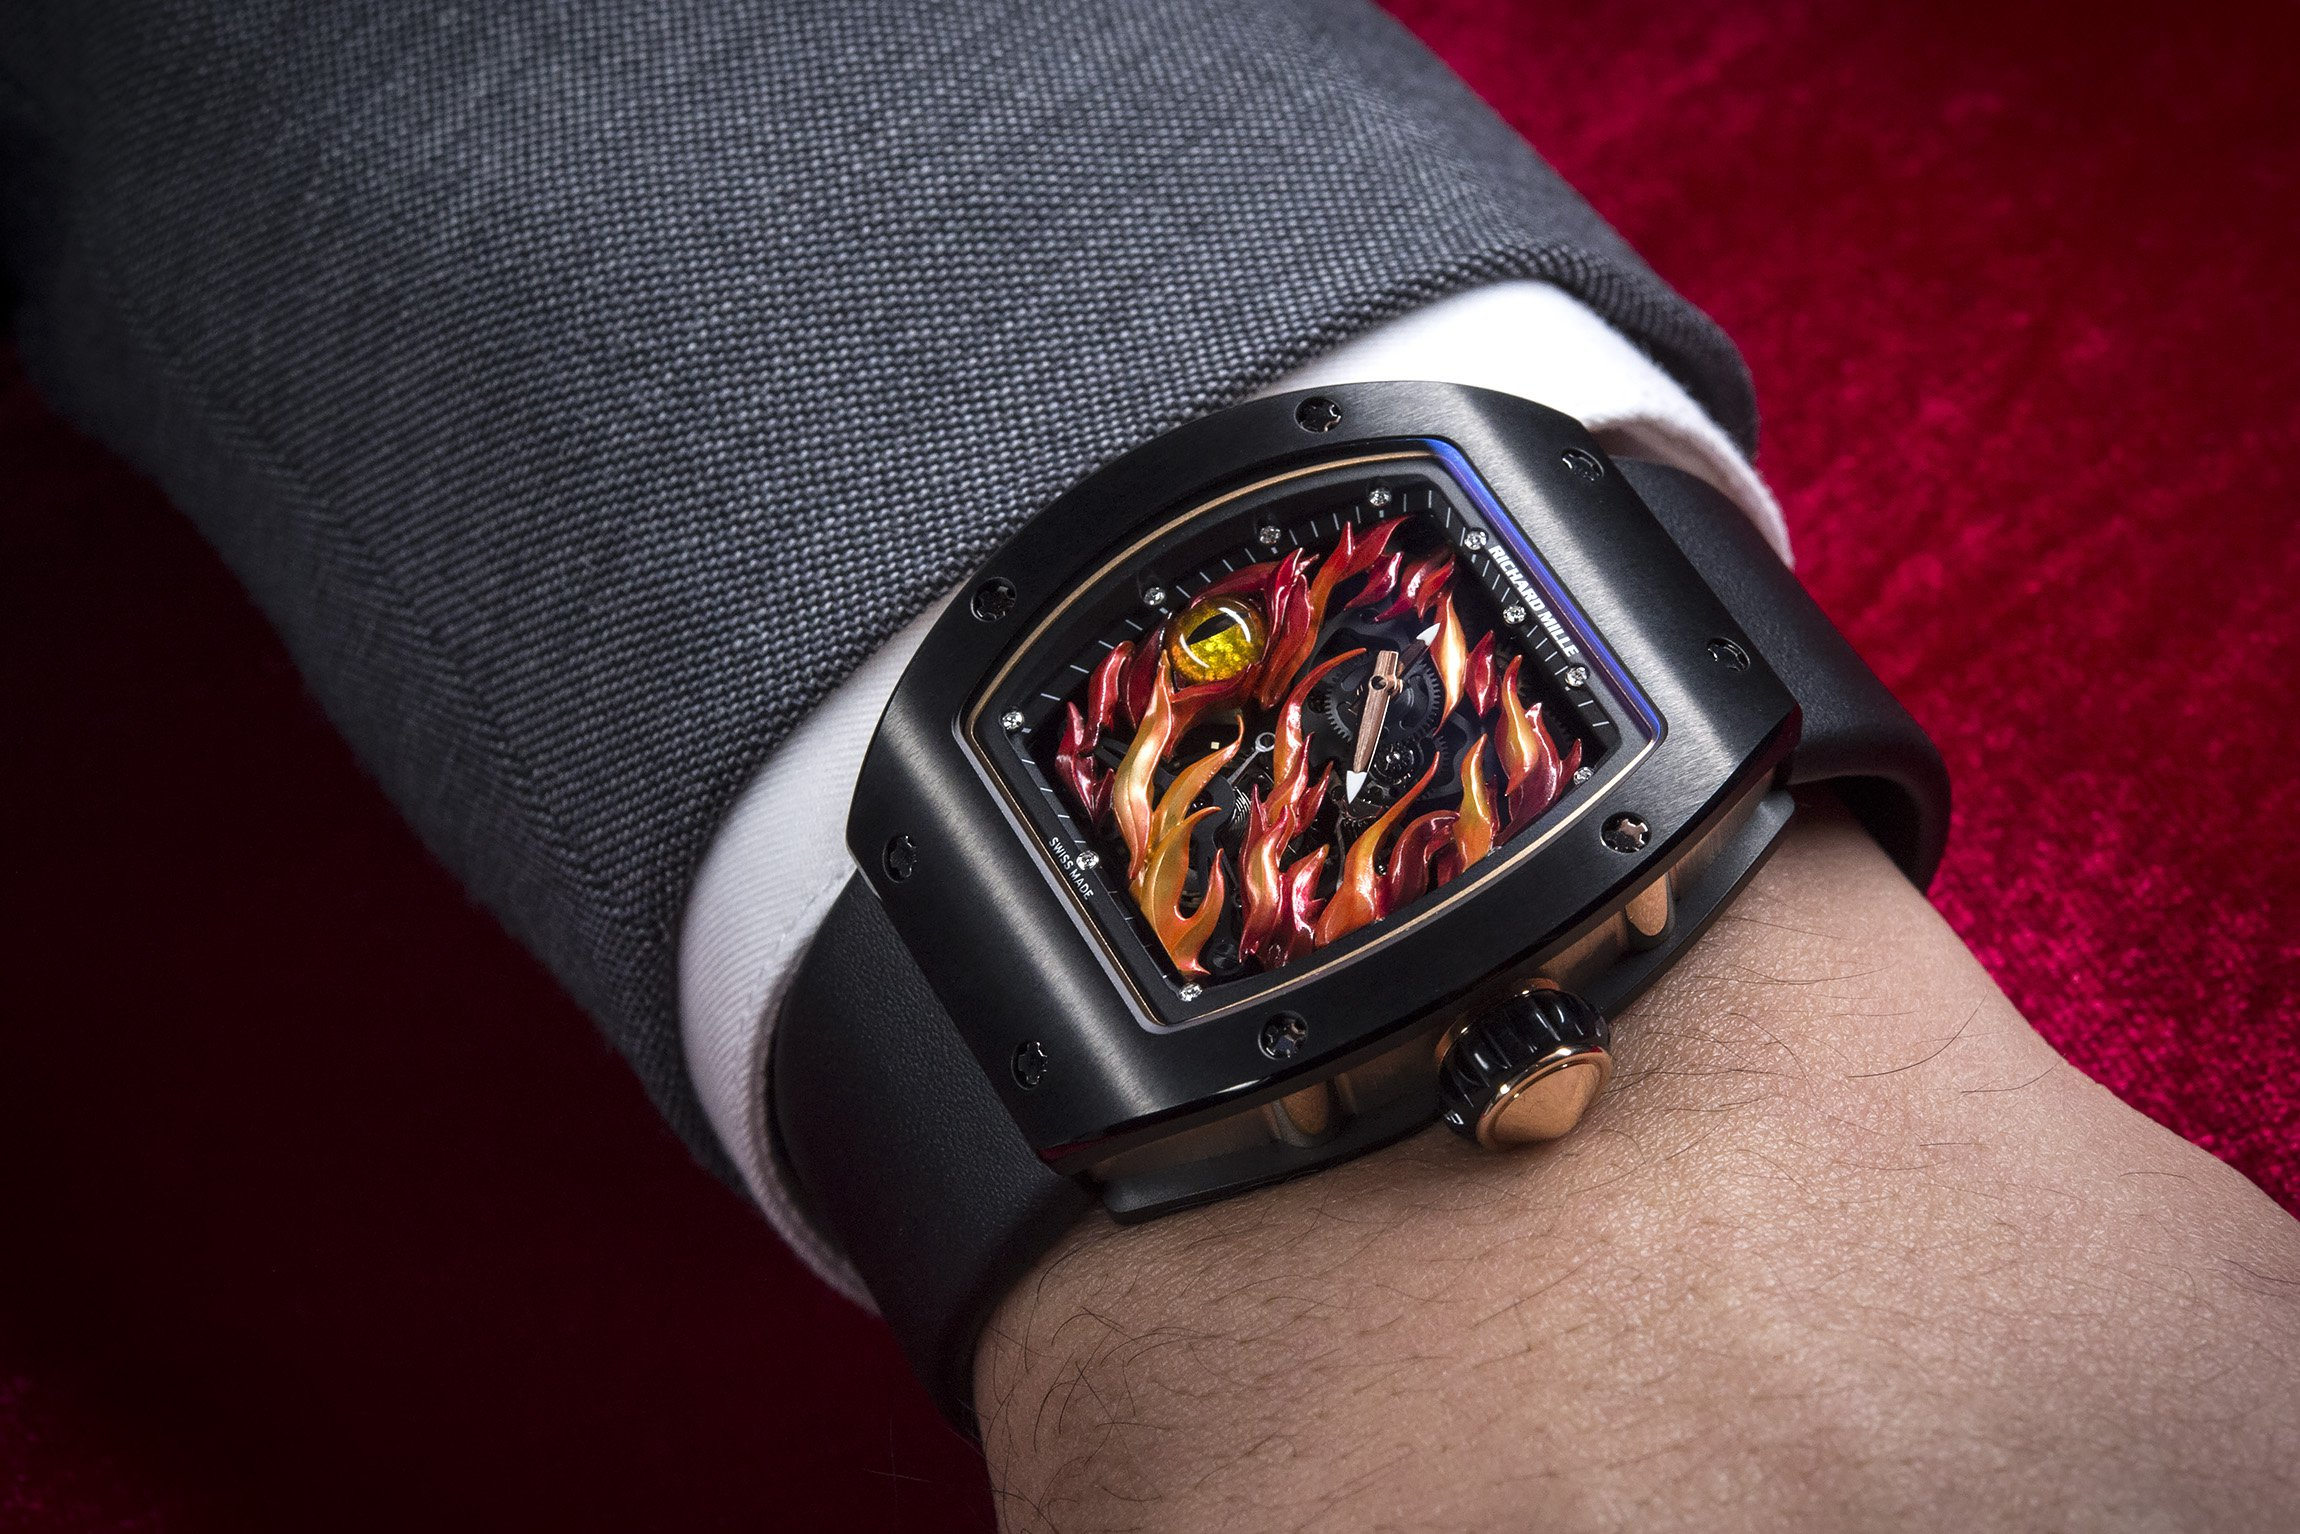 Richard-Mille-Evil-Eye-RM-26-02-Tourbillon-Watch-Watches-And-Wonders-2015-Wrist